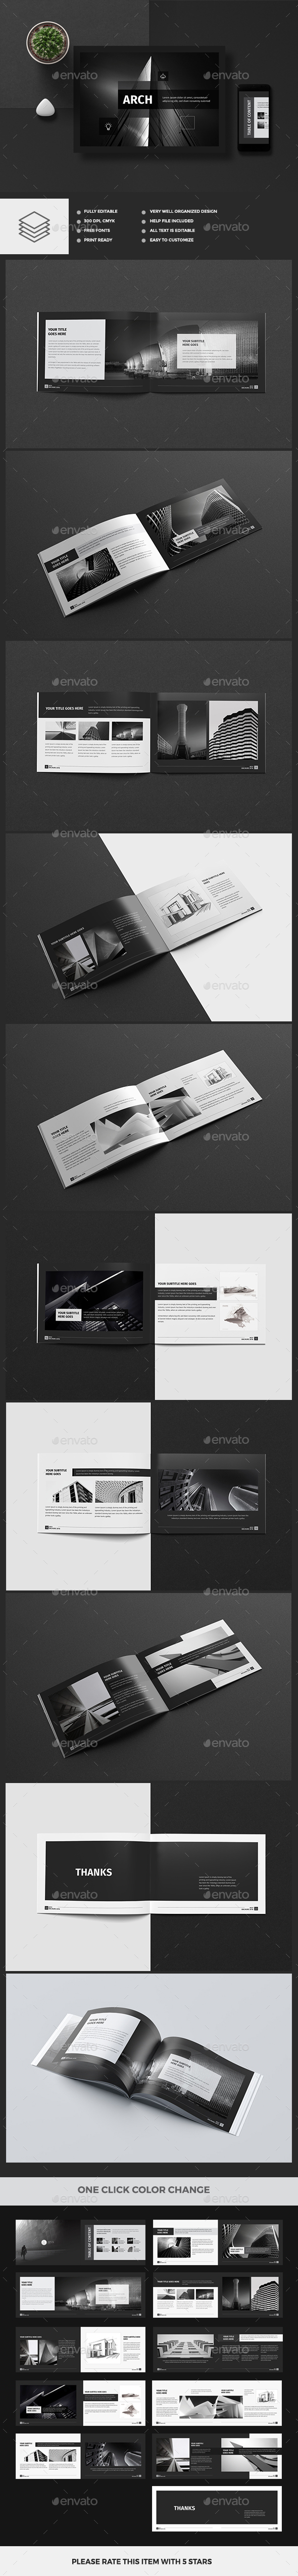 Modern Architecture Brochure 24 Pages A4 & A5 - Brochures Print Templates